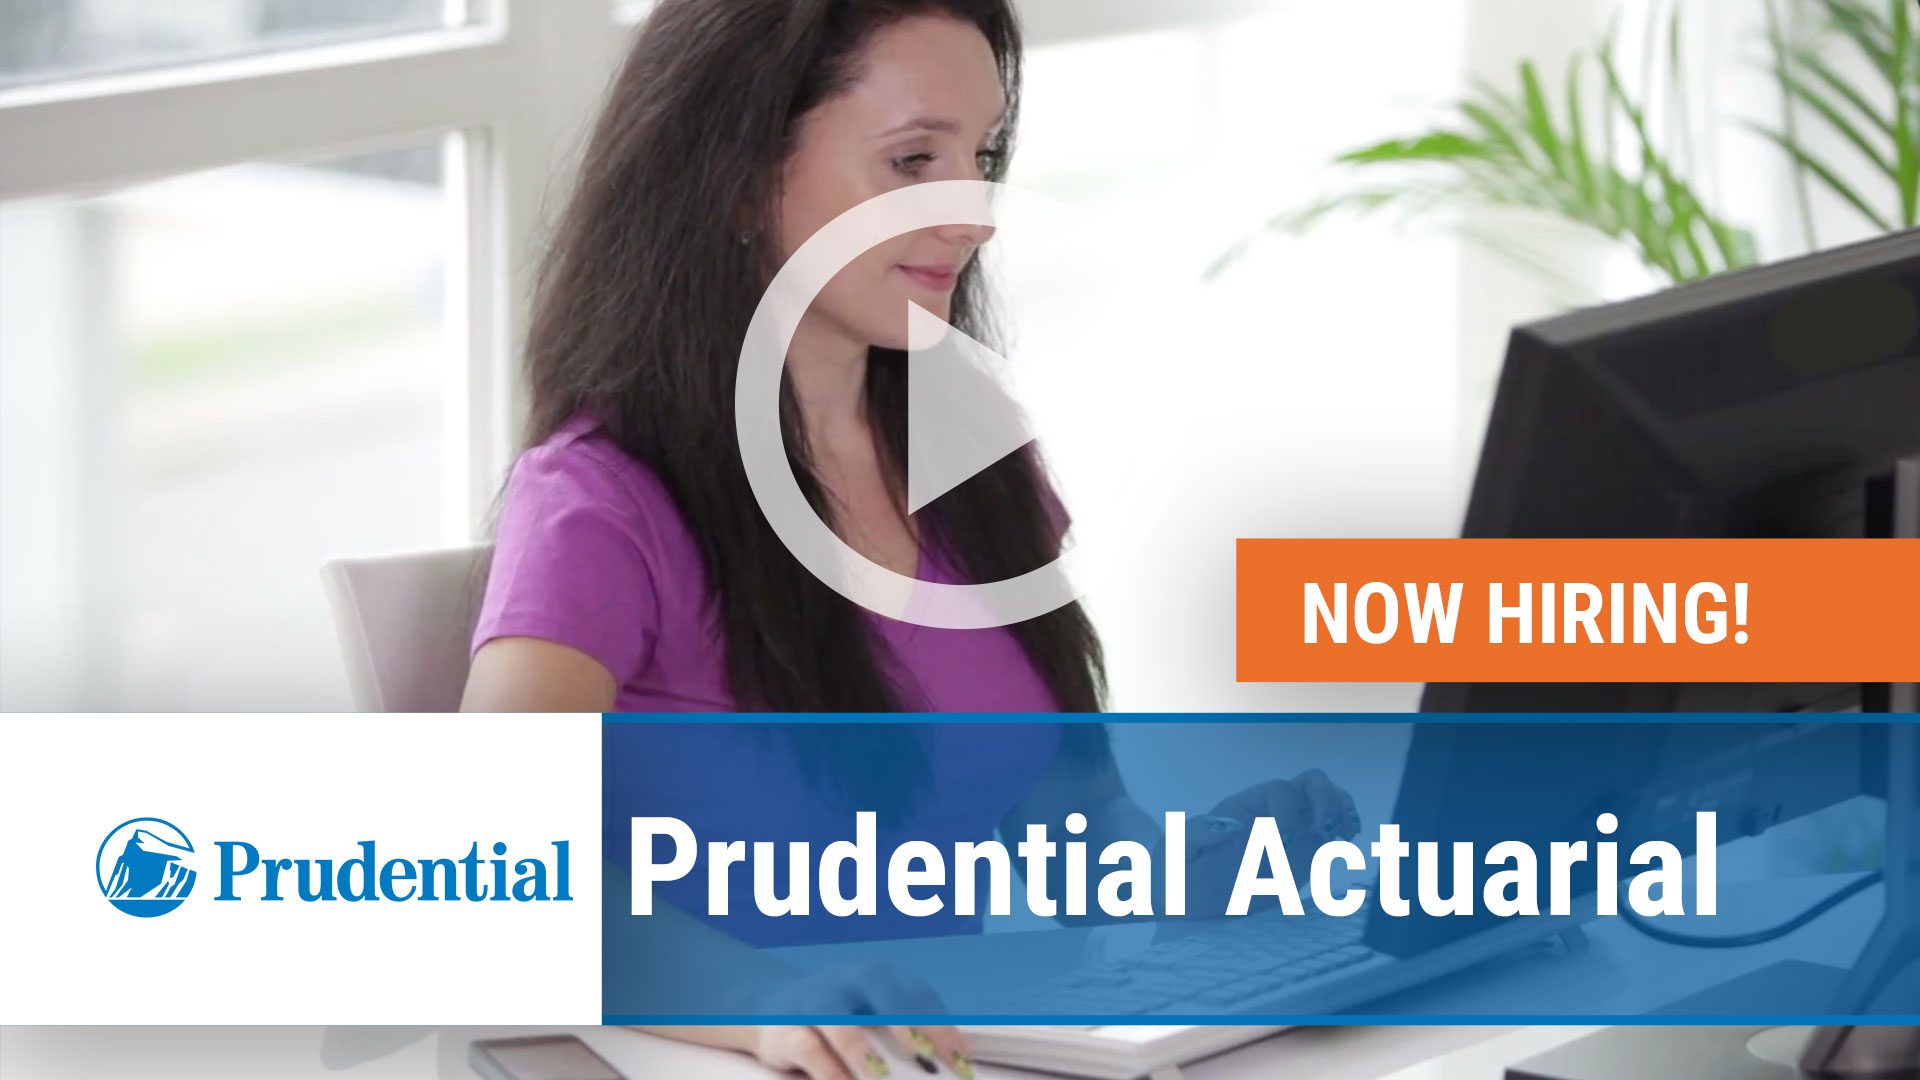 Watch our careers video for available job opening Prudential Actuarial in Newark NJ, Hartford CT